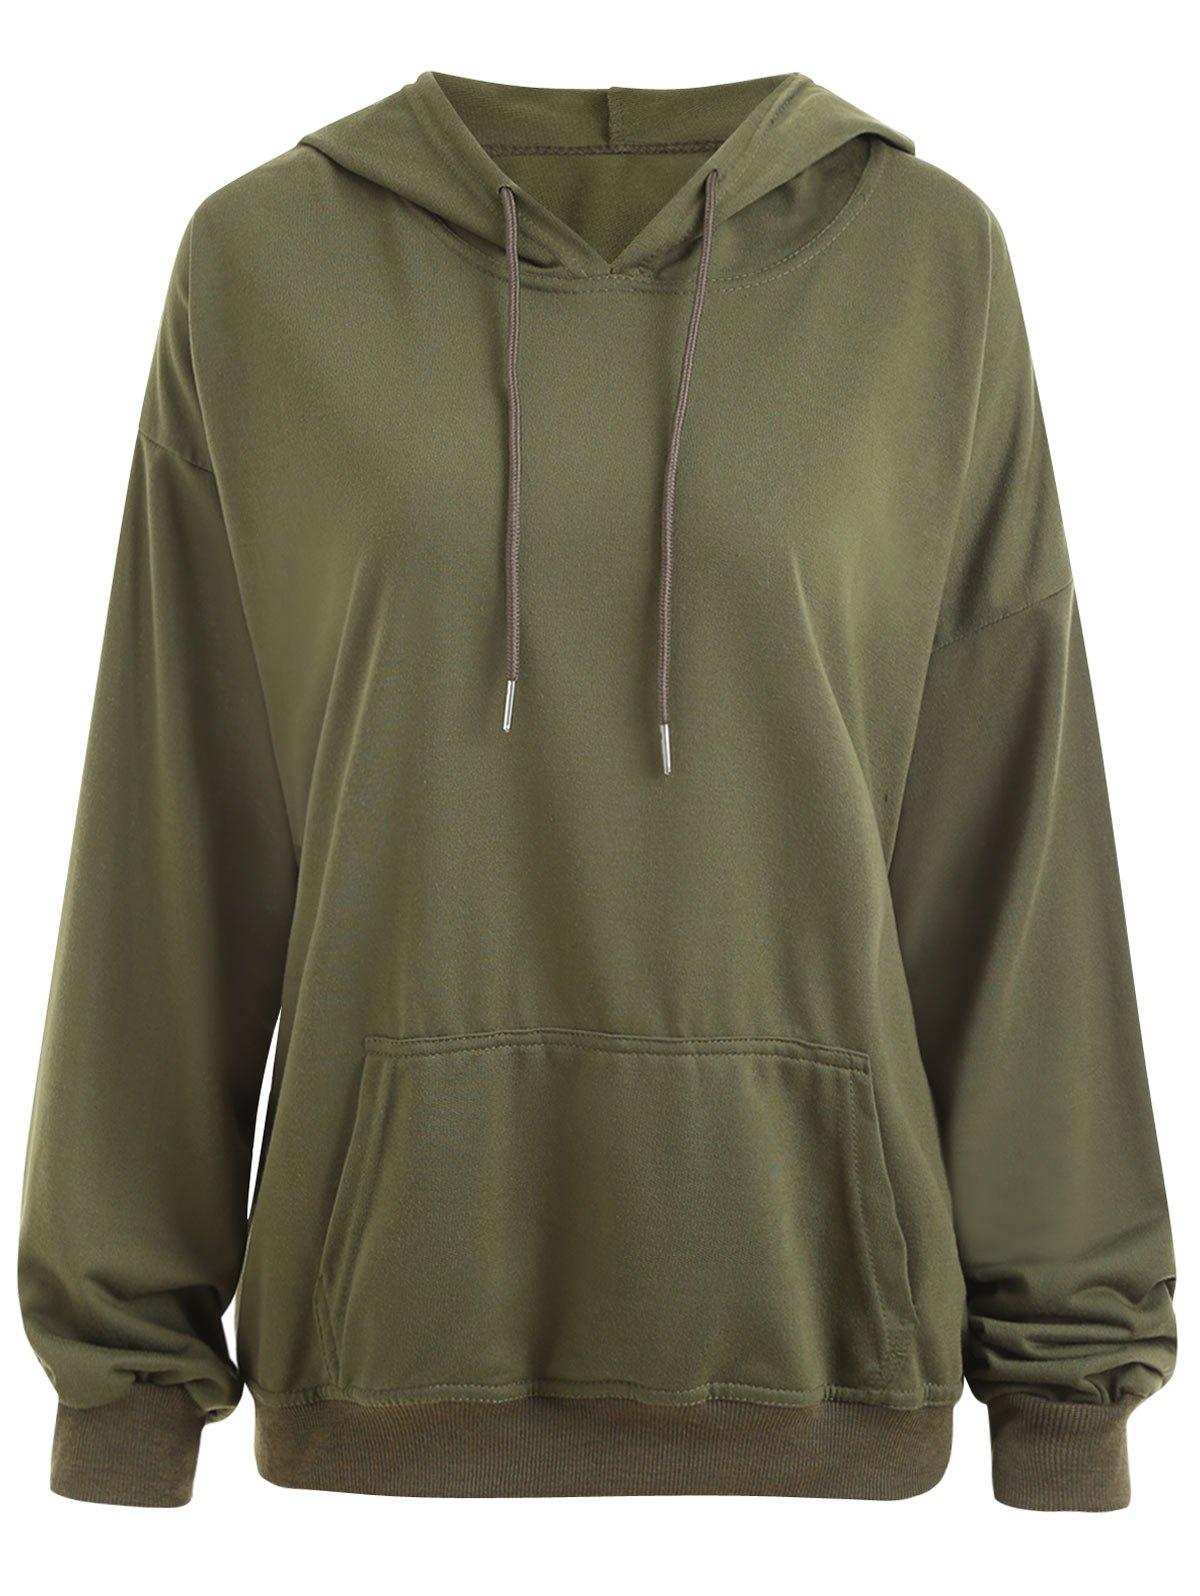 Drop Shoulder Plus Size Plain Hoodie with PocketWOMEN<br><br>Size: 2XL; Color: ARMY GREEN; Material: Cotton Blend,Polyester; Shirt Length: Regular; Sleeve Length: Full; Style: Fashion; Pattern Style: Solid; Embellishment: Front Pocket; Season: Fall,Winter; Weight: 0.3700kg; Package Contents: 1 x Hoodie;